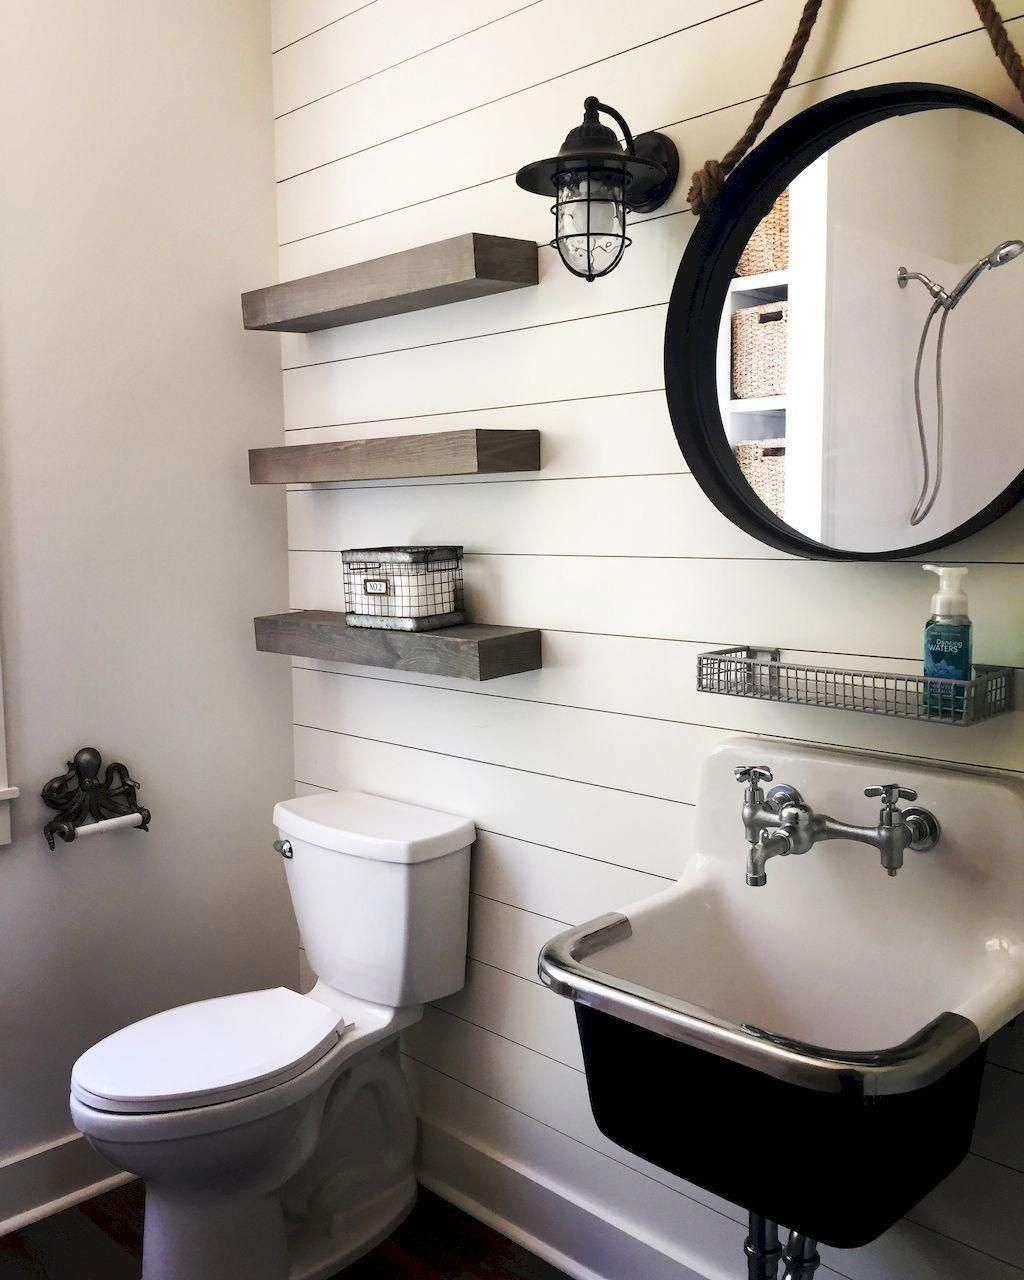 30 amazing coastal nautical bathroom remodel ideas 30 amazing rh pinterest com